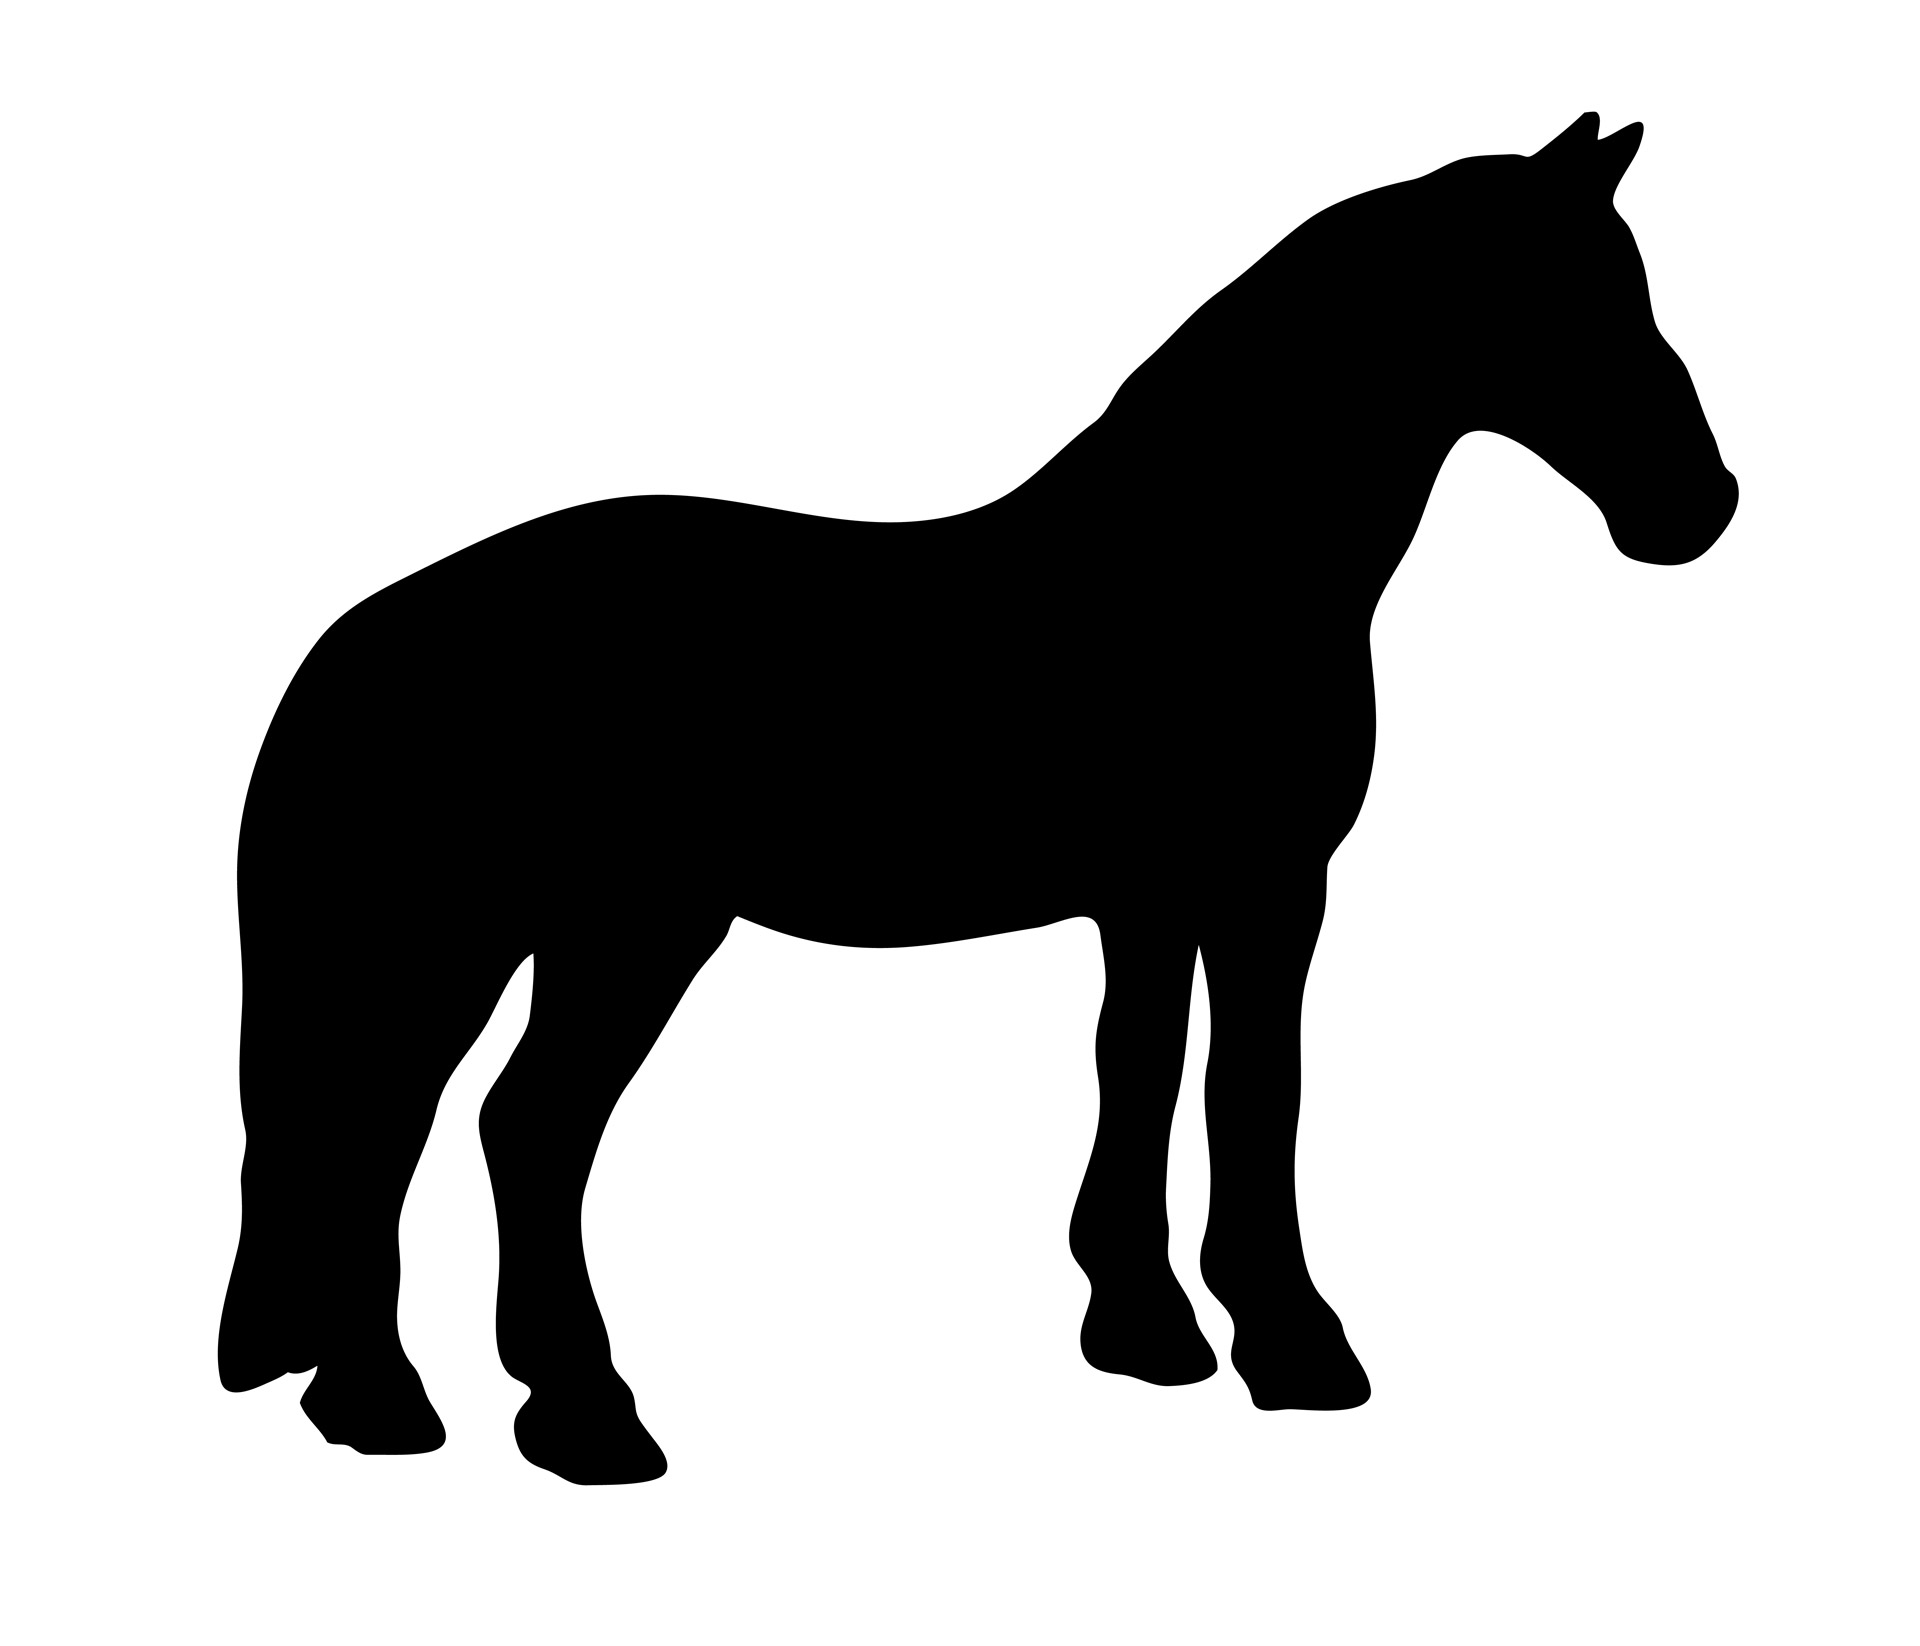 Black silhouette free stock. Horse clip art pretty horse png free stock